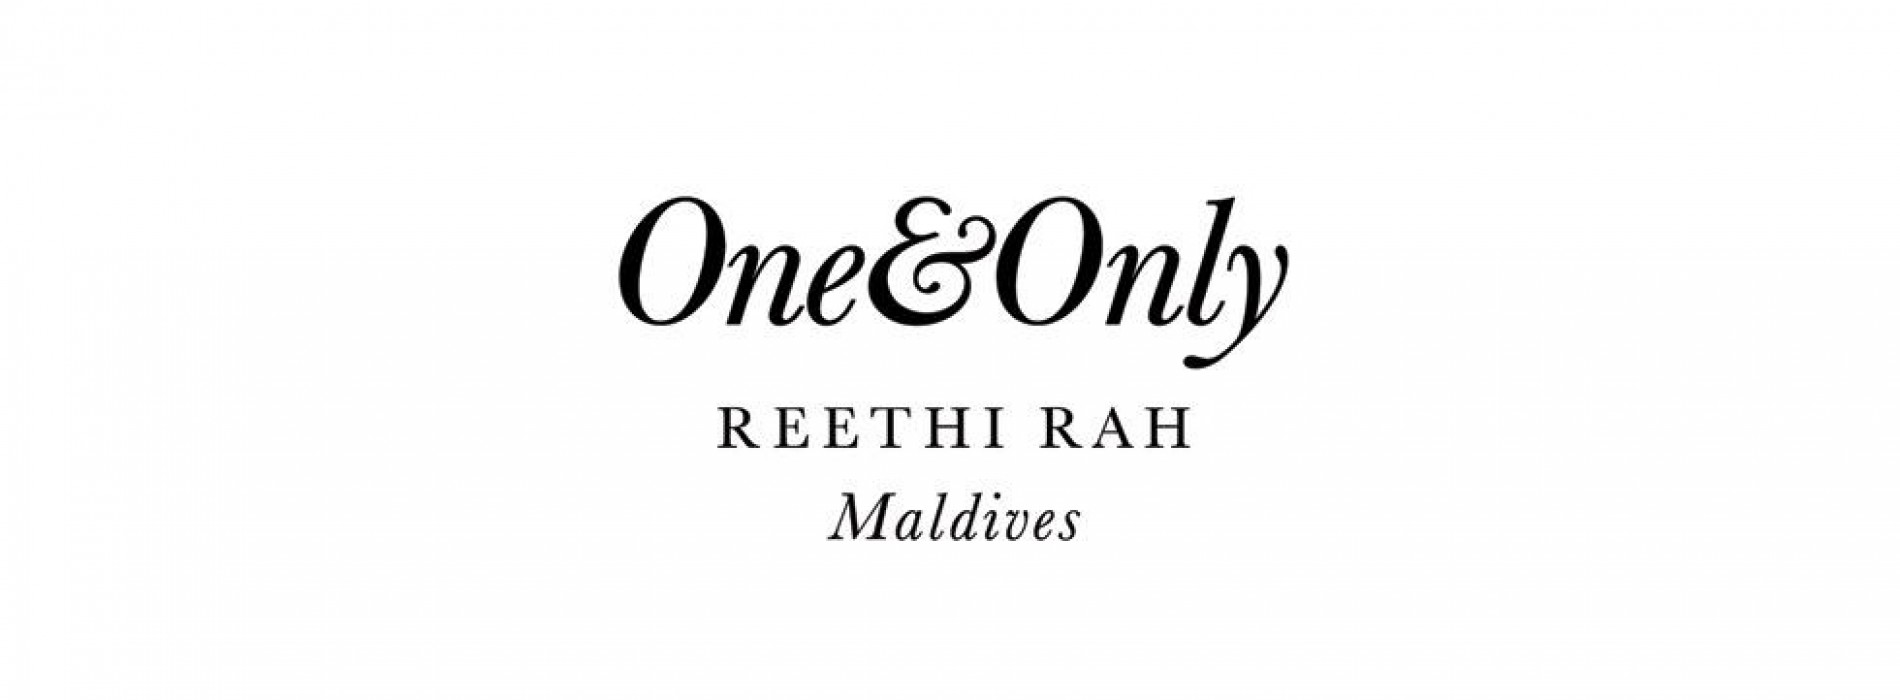 Explore the magnificent underwater life at the One&Only Reethi Rah, Maldives